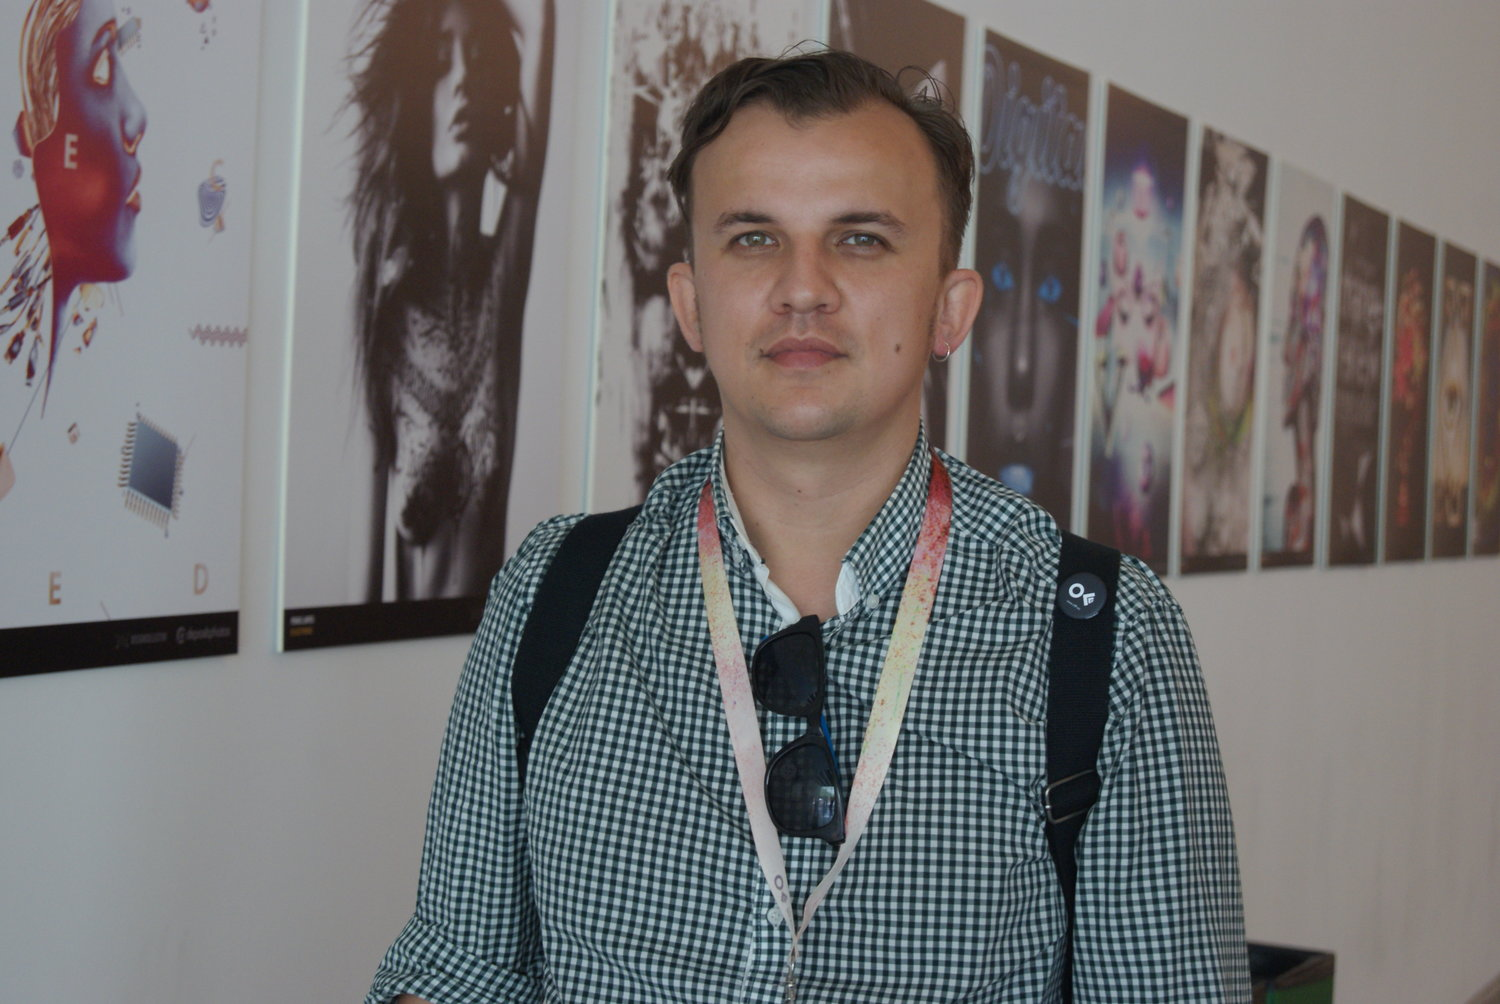 Digital Decade curator, Arseny Vesnin